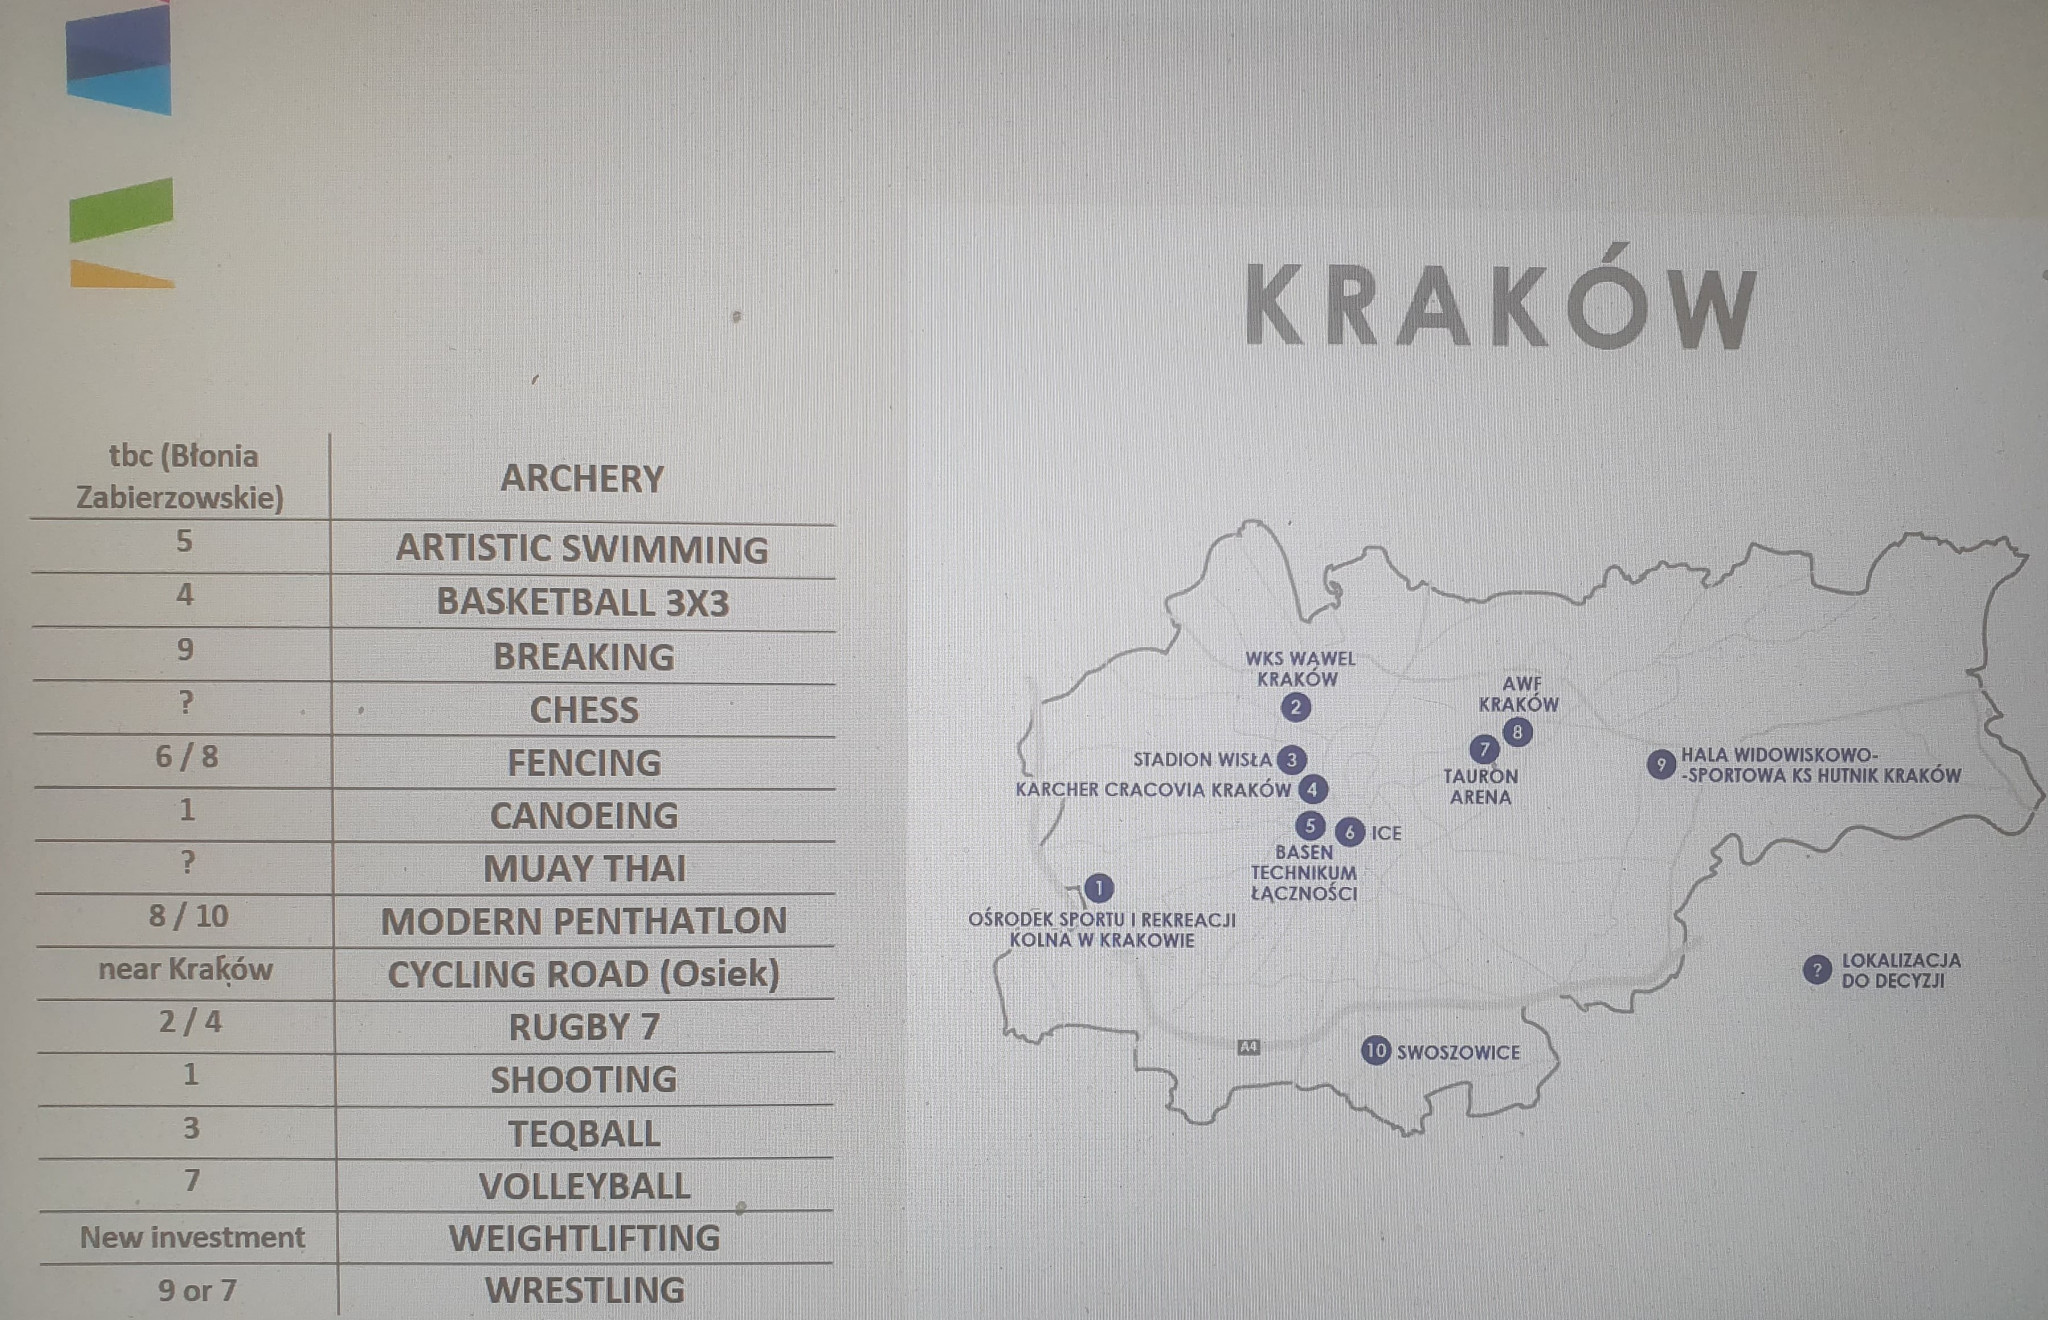 Krakow is expected to host the majority of events at the Games ©Polish Olympic Committee